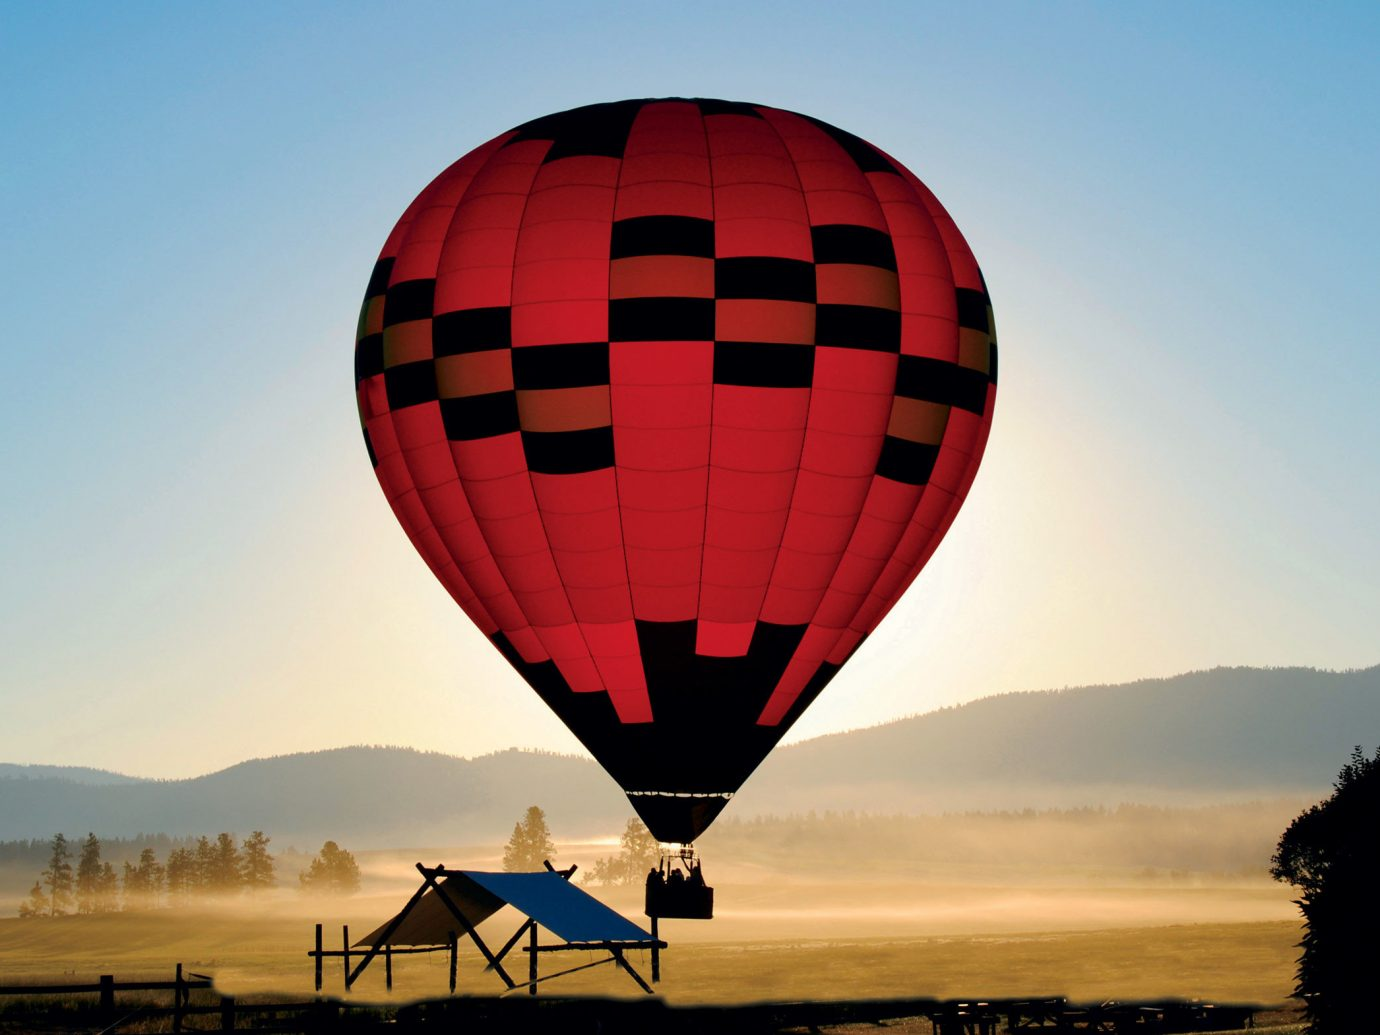 Glamping Luxury Travel Outdoors + Adventure aircraft balloon transport sky outdoor hot air ballooning Hot Air Balloon vehicle atmosphere of earth toy